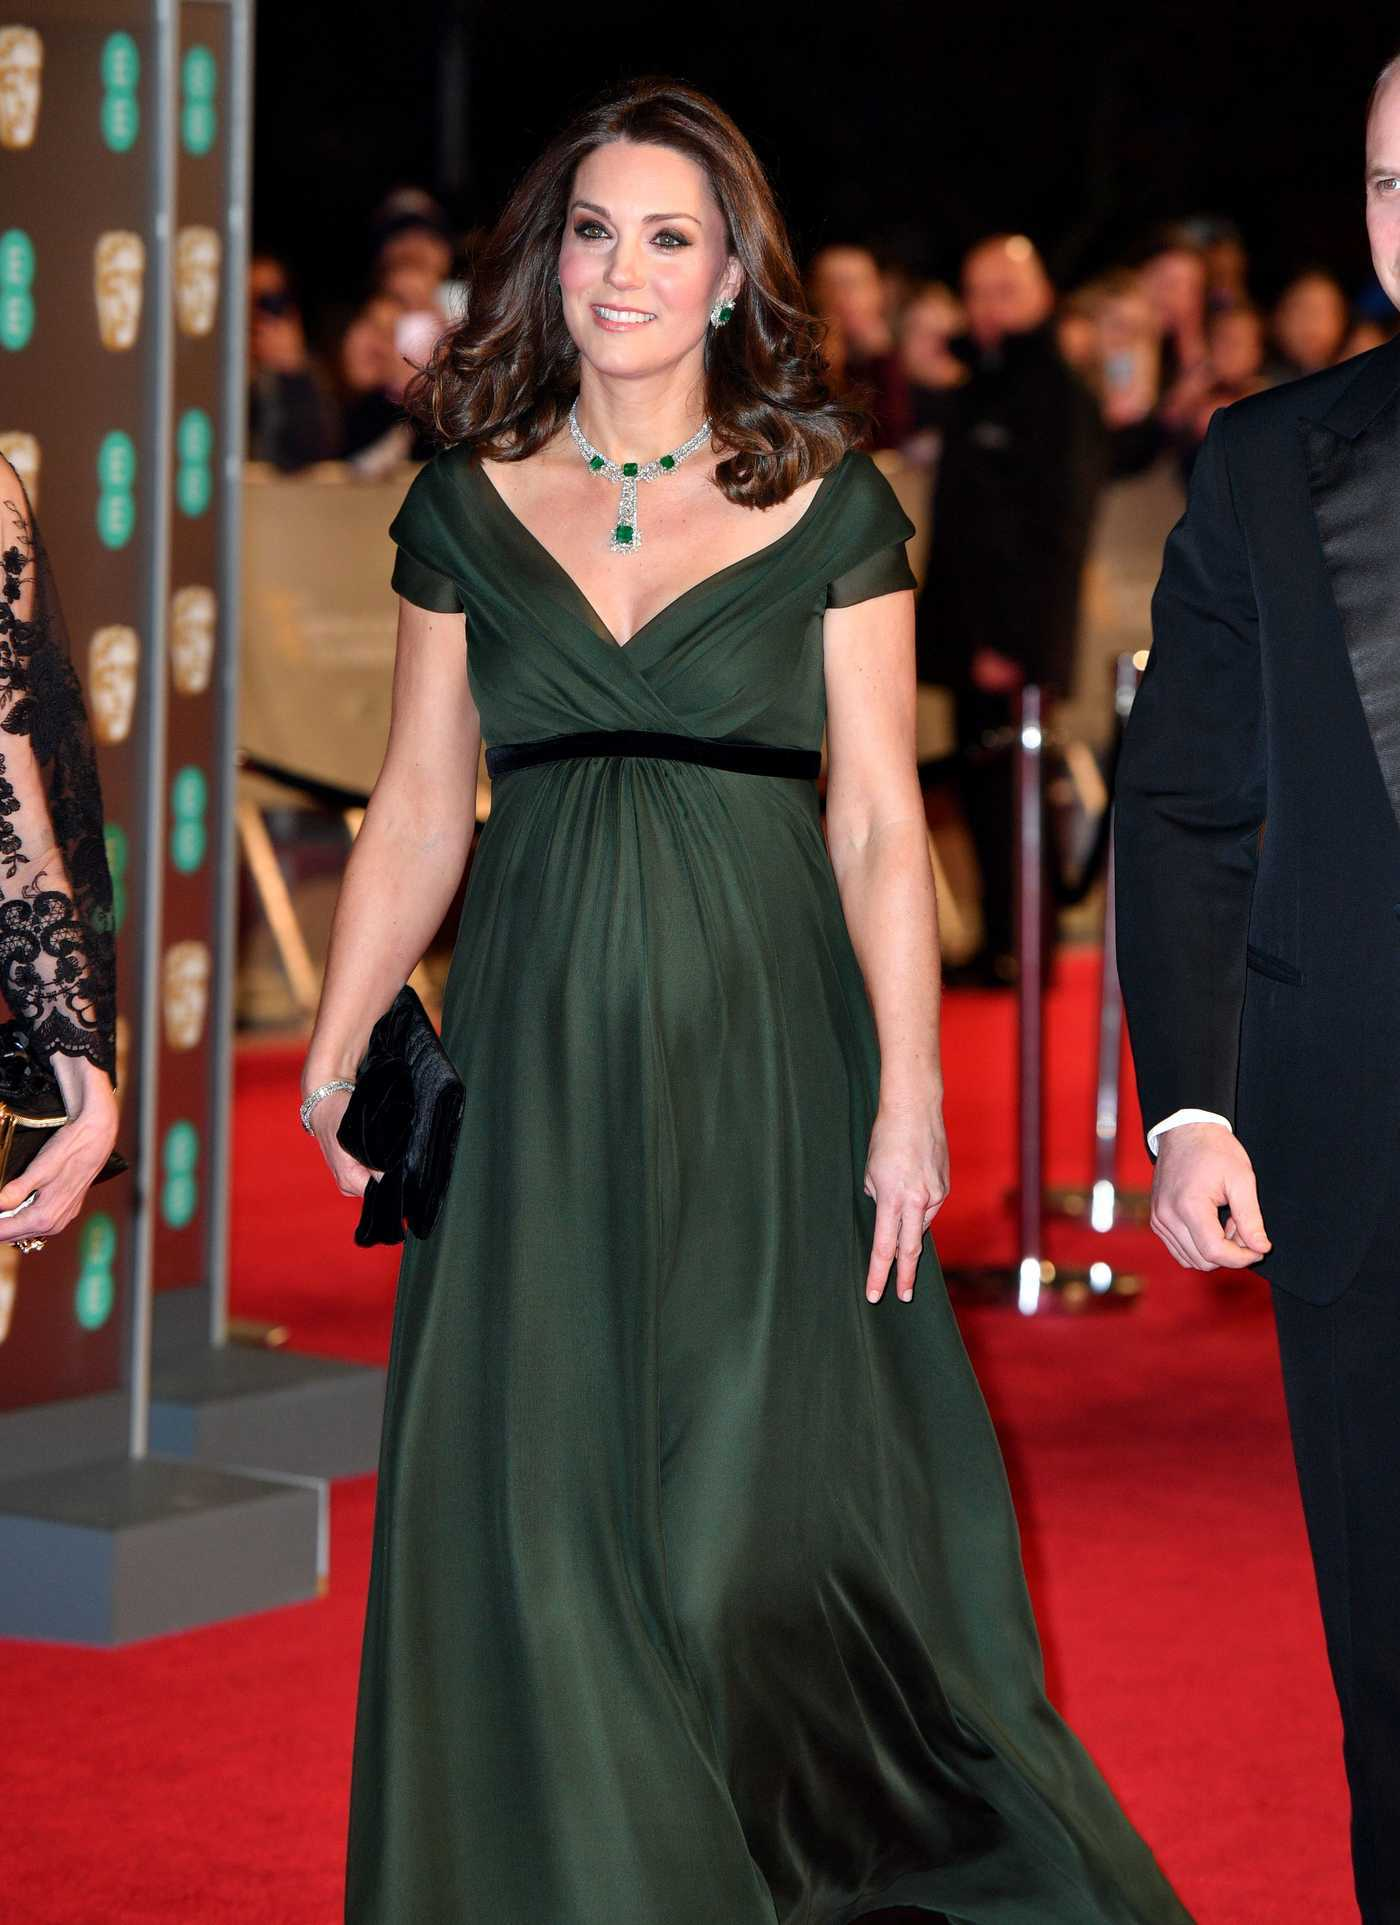 Catherine Duchess of Cambridge at the 71st British Academy Film Awards at Royal Albert Hall in London 02/18/2018